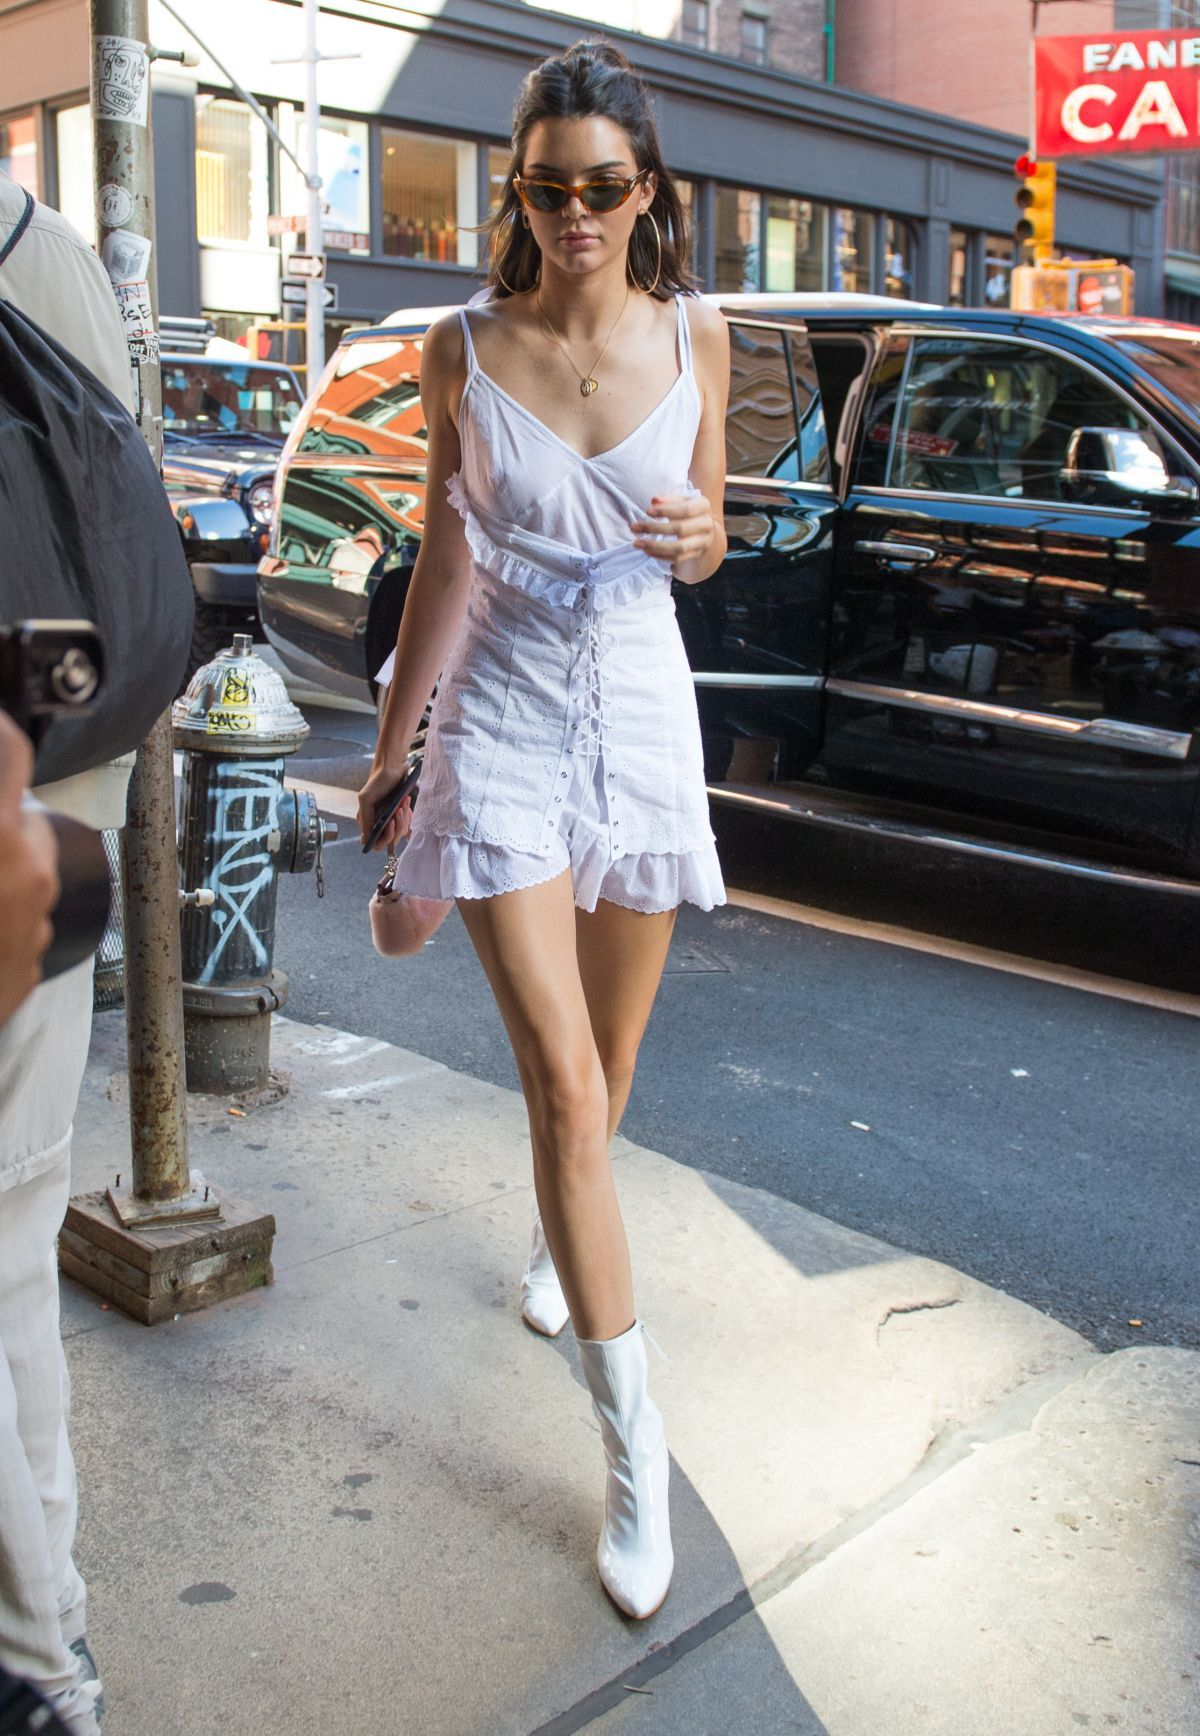 038099234_Kendall_Jenner_See_Through_10_thefappeningblog.com__123_594lo.jpg